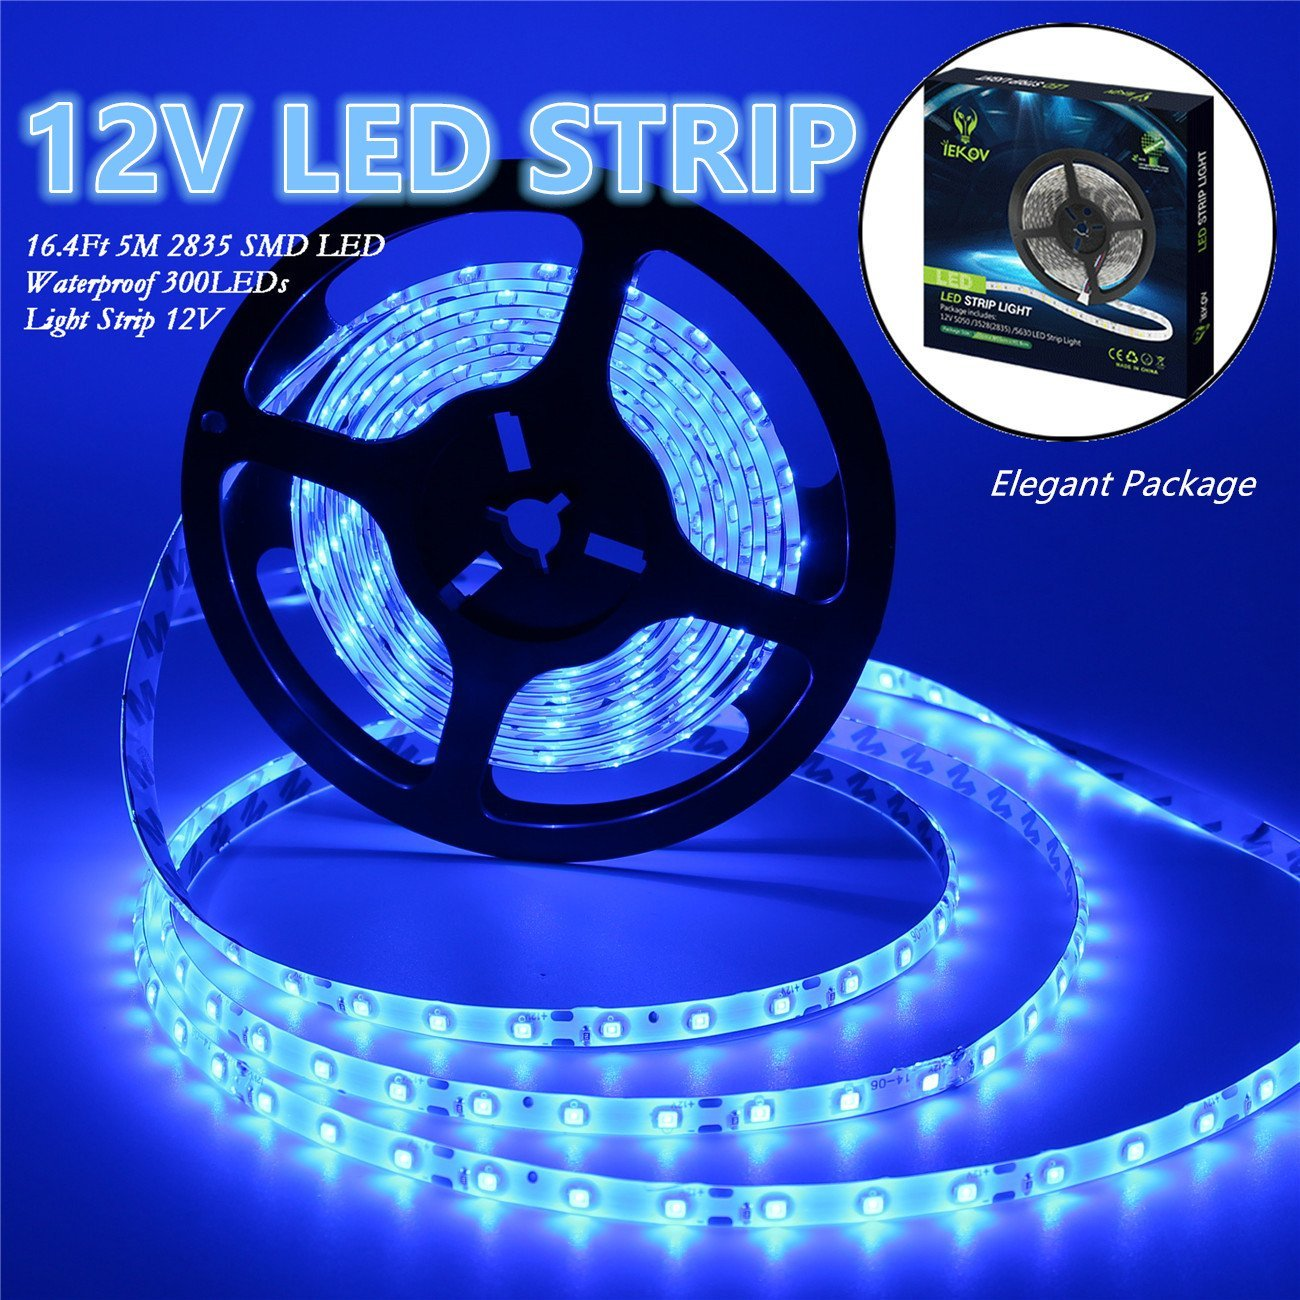 Led Strip Lights, IEKOV™ 2835 SMD 300LEDs Waterproof Flexible Xmas Decorative Lighting Strips, LED Tape, 5M 16.4Ft DC12V, 2 times brightness than SMD 3528 LED Light Strip (Blue)